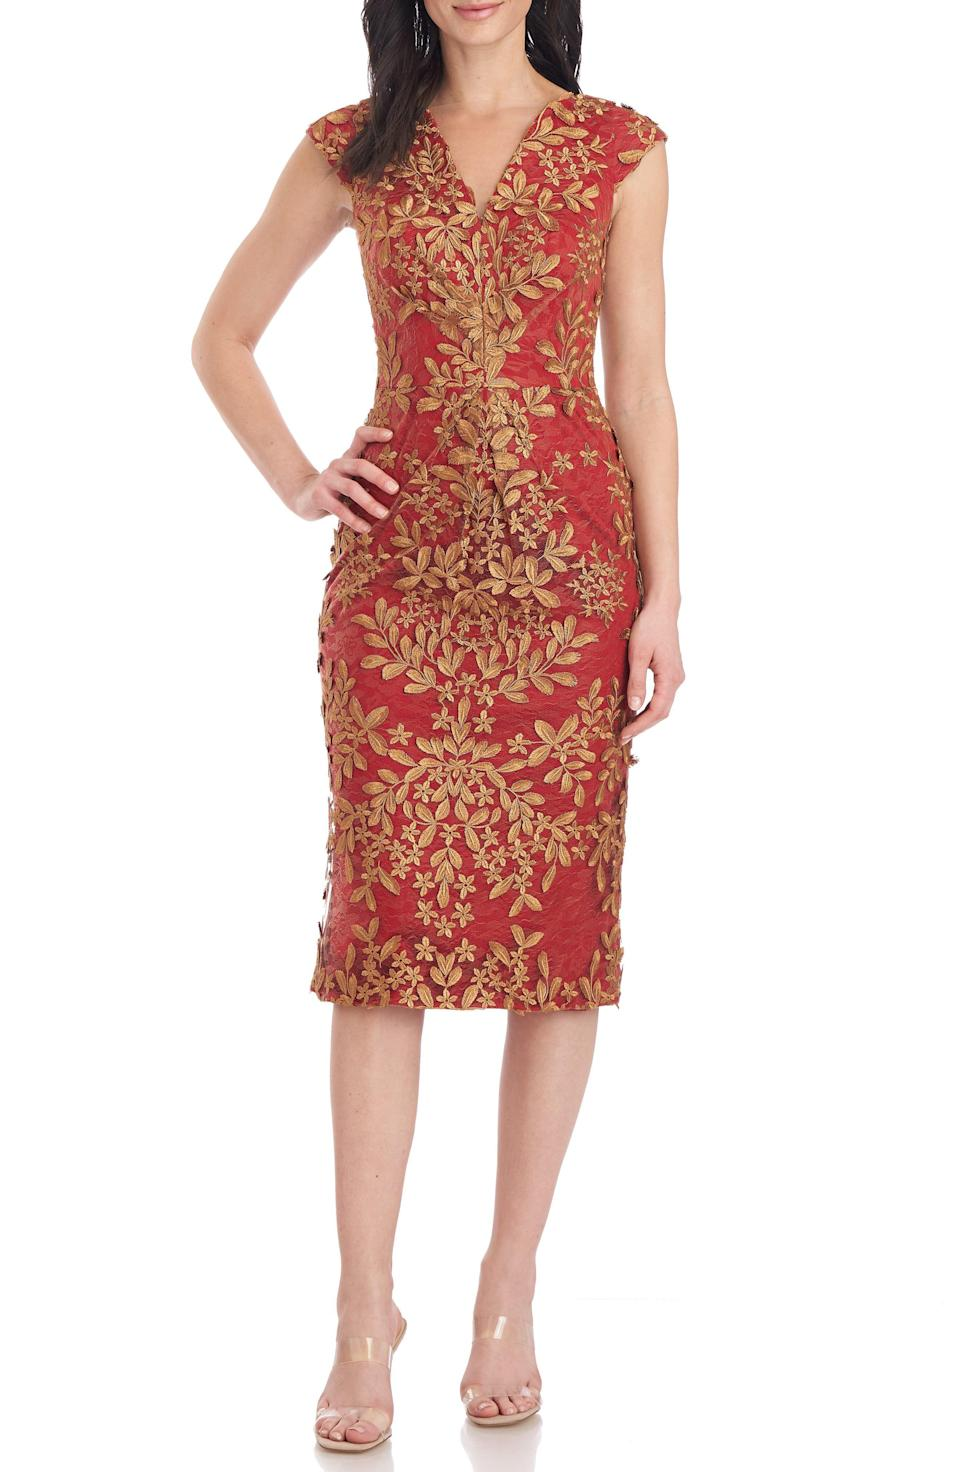 """<p><strong>JS Collections</strong></p><p>nordstrom.com</p><p><strong>$298.00</strong></p><p><a href=""""https://go.redirectingat.com?id=74968X1596630&url=https%3A%2F%2Fwww.nordstrom.com%2Fs%2Fjs-collections-wren-sheath-midi-dress%2F6467716&sref=https%3A%2F%2Fwww.townandcountrymag.com%2Fstyle%2Ffashion-trends%2Fg12096491%2Fbest-fall-wedding-guest-dresses%2F"""" rel=""""nofollow noopener"""" target=""""_blank"""" data-ylk=""""slk:Shop Now"""" class=""""link rapid-noclick-resp"""">Shop Now</a></p><p>Sophisticated embroidery makes this simple shape a knock-out.</p>"""